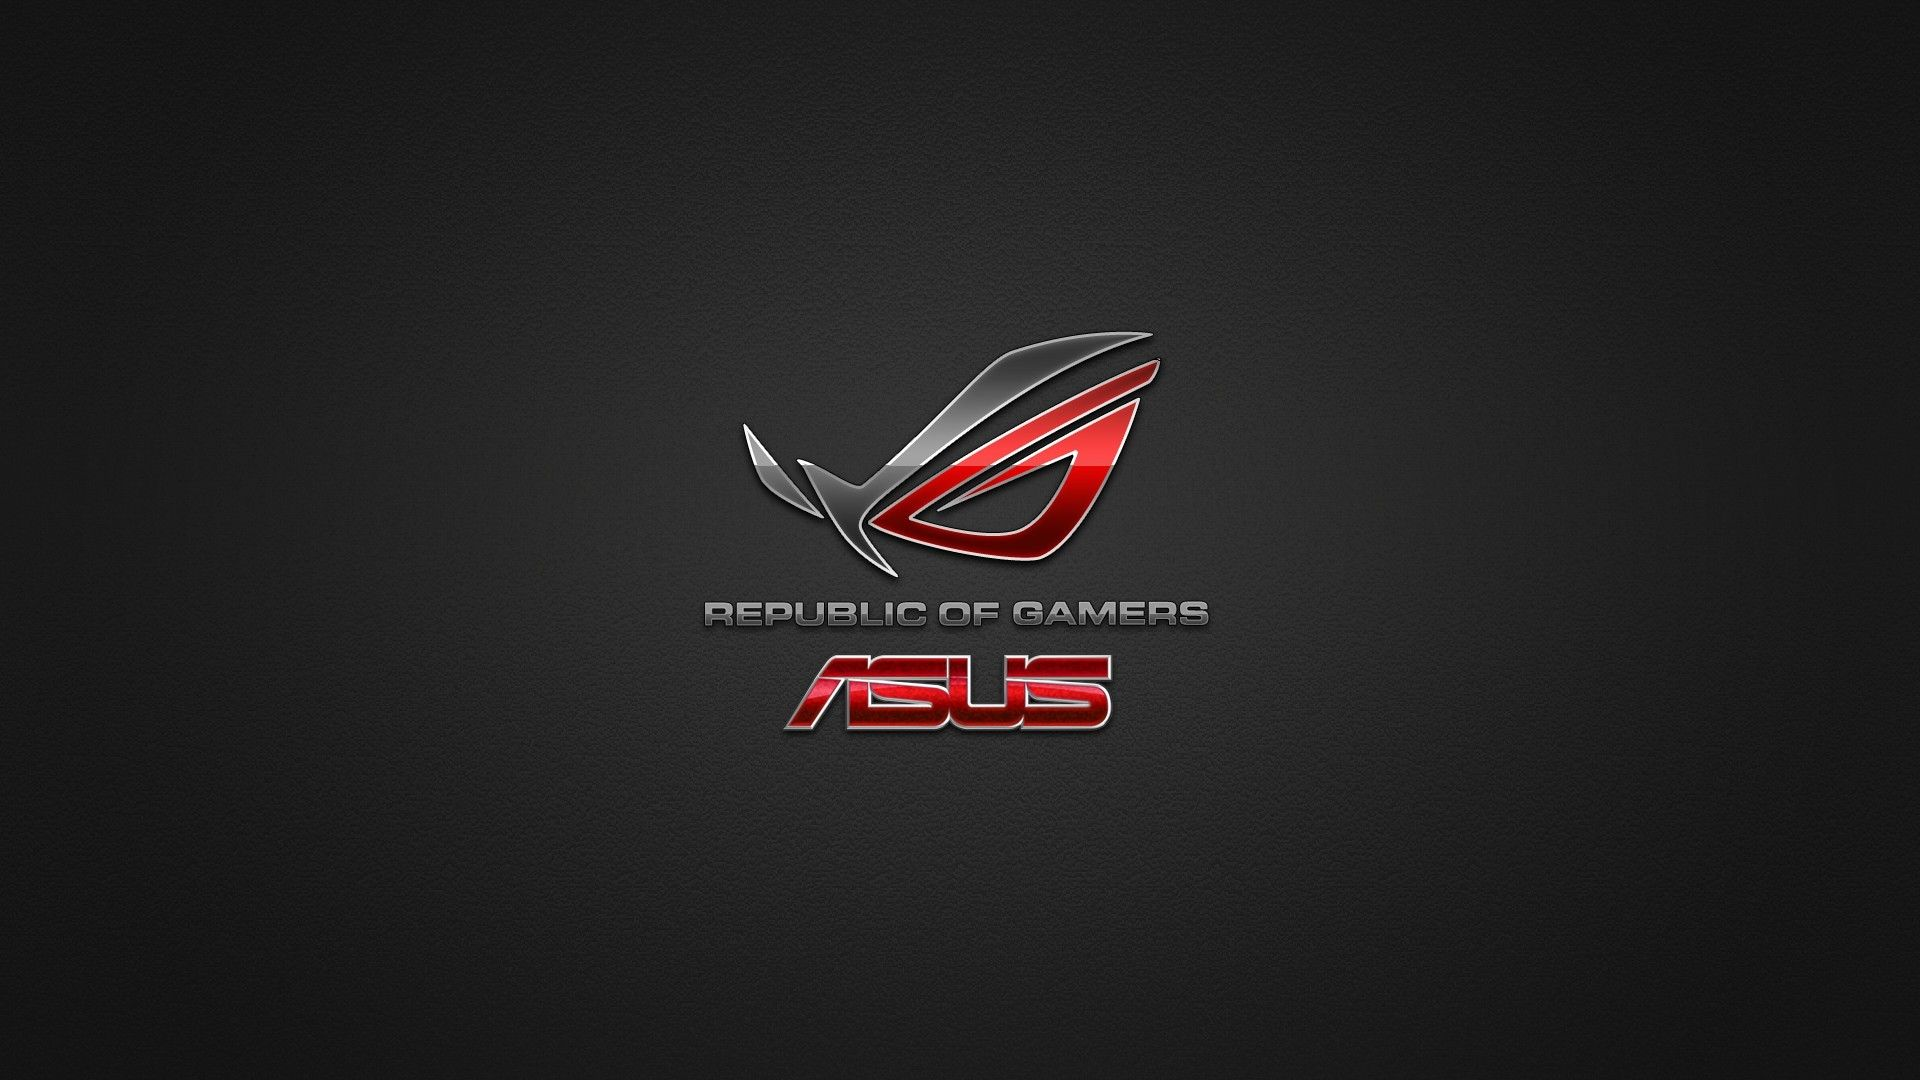 rog wallpaper of republic of gamers logo red mask a gray background 1920x1080